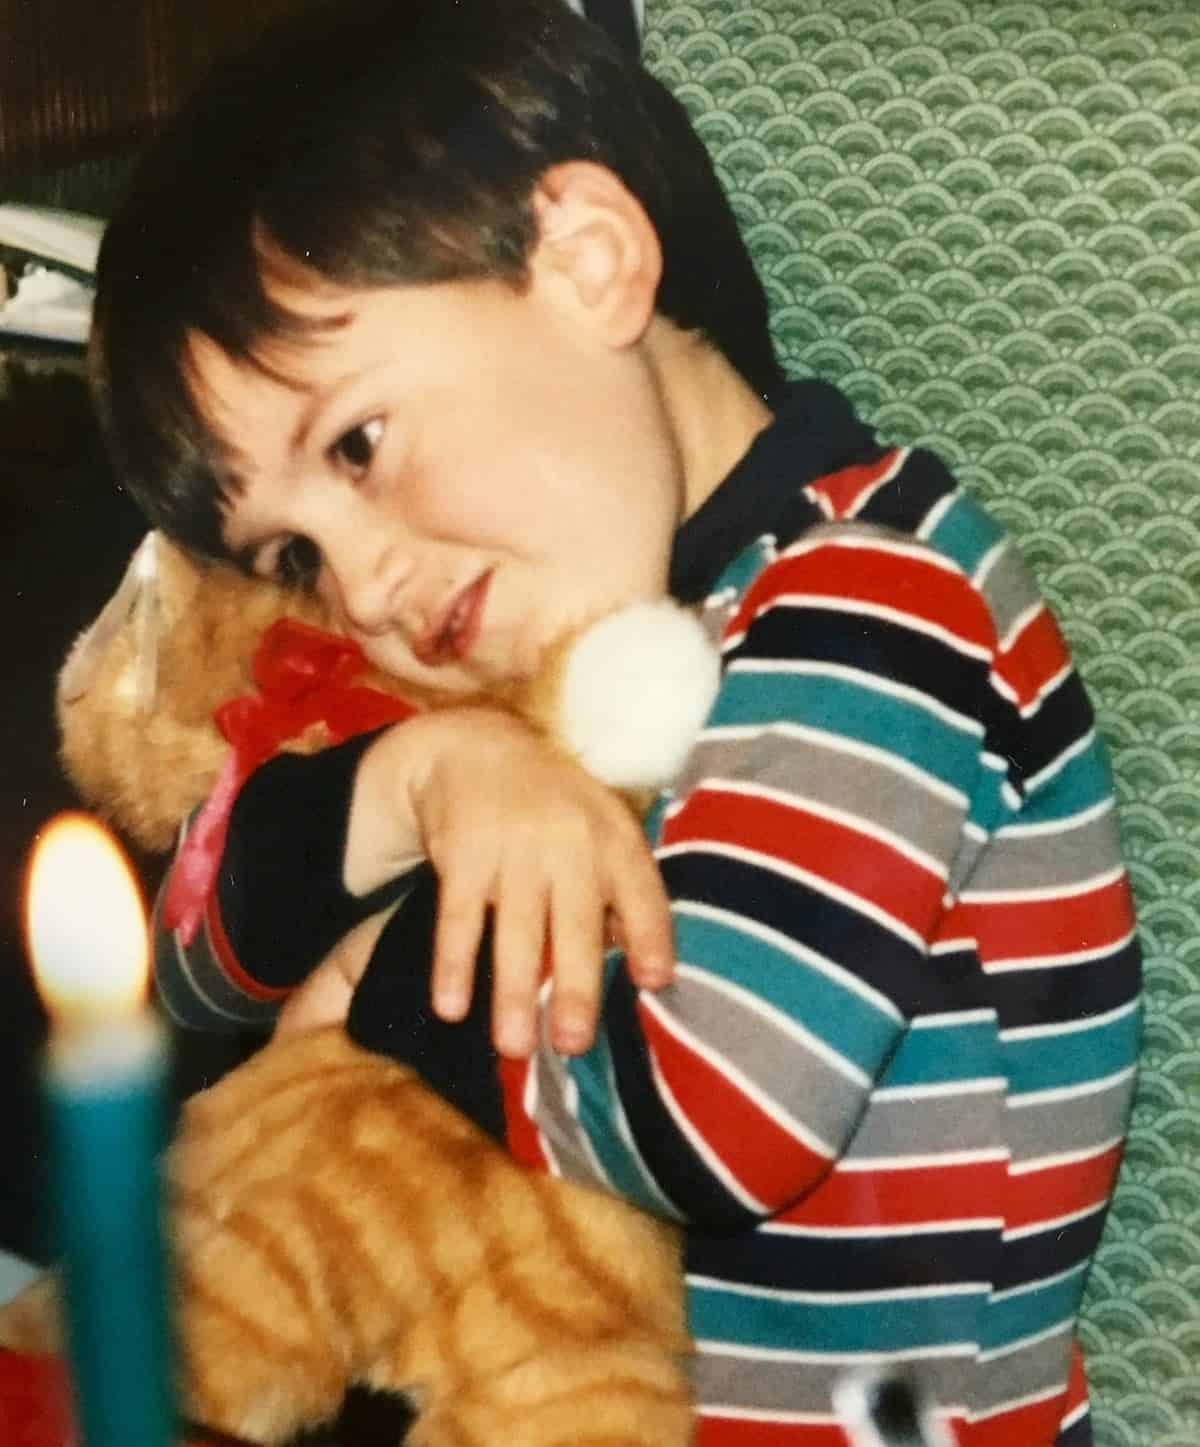 young William hugging his kitty